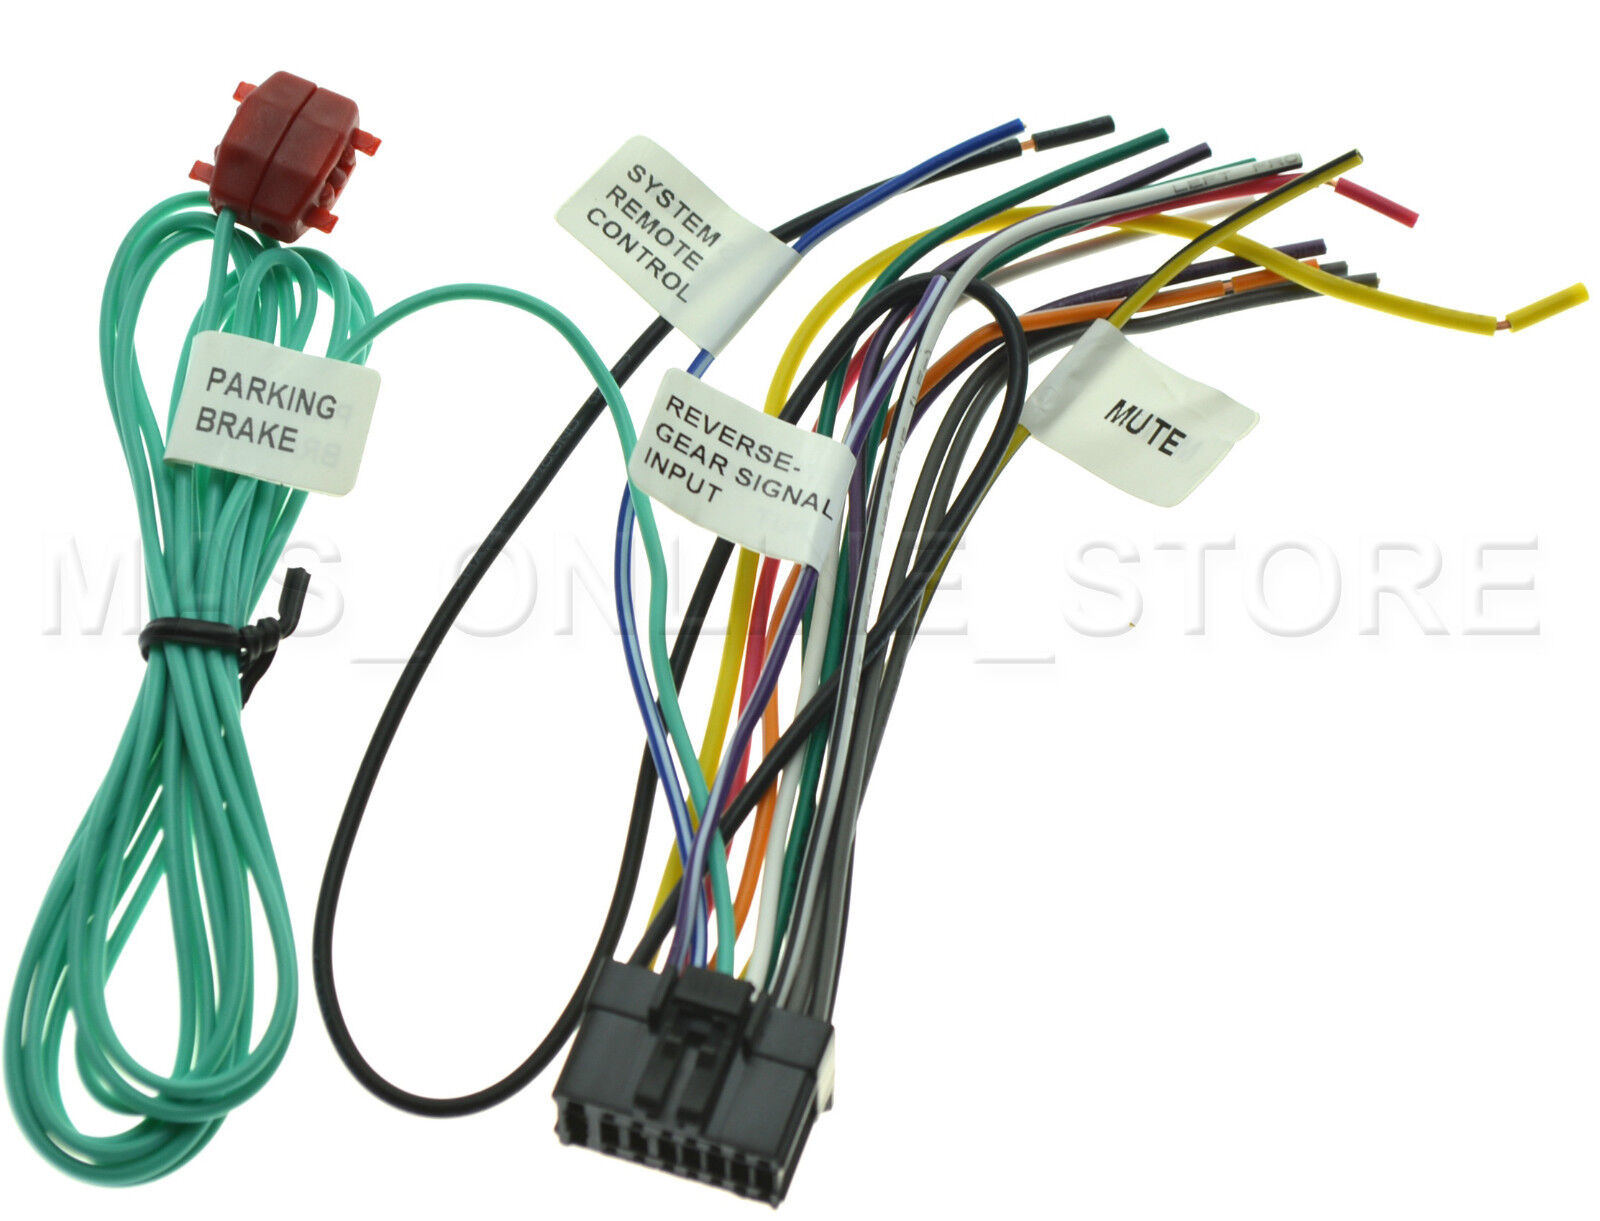 Wire Harness For Pioneer Avh P4000dvd Avhp4000dvd Pay Today Ships How To 8200 1 Of 2free Shipping